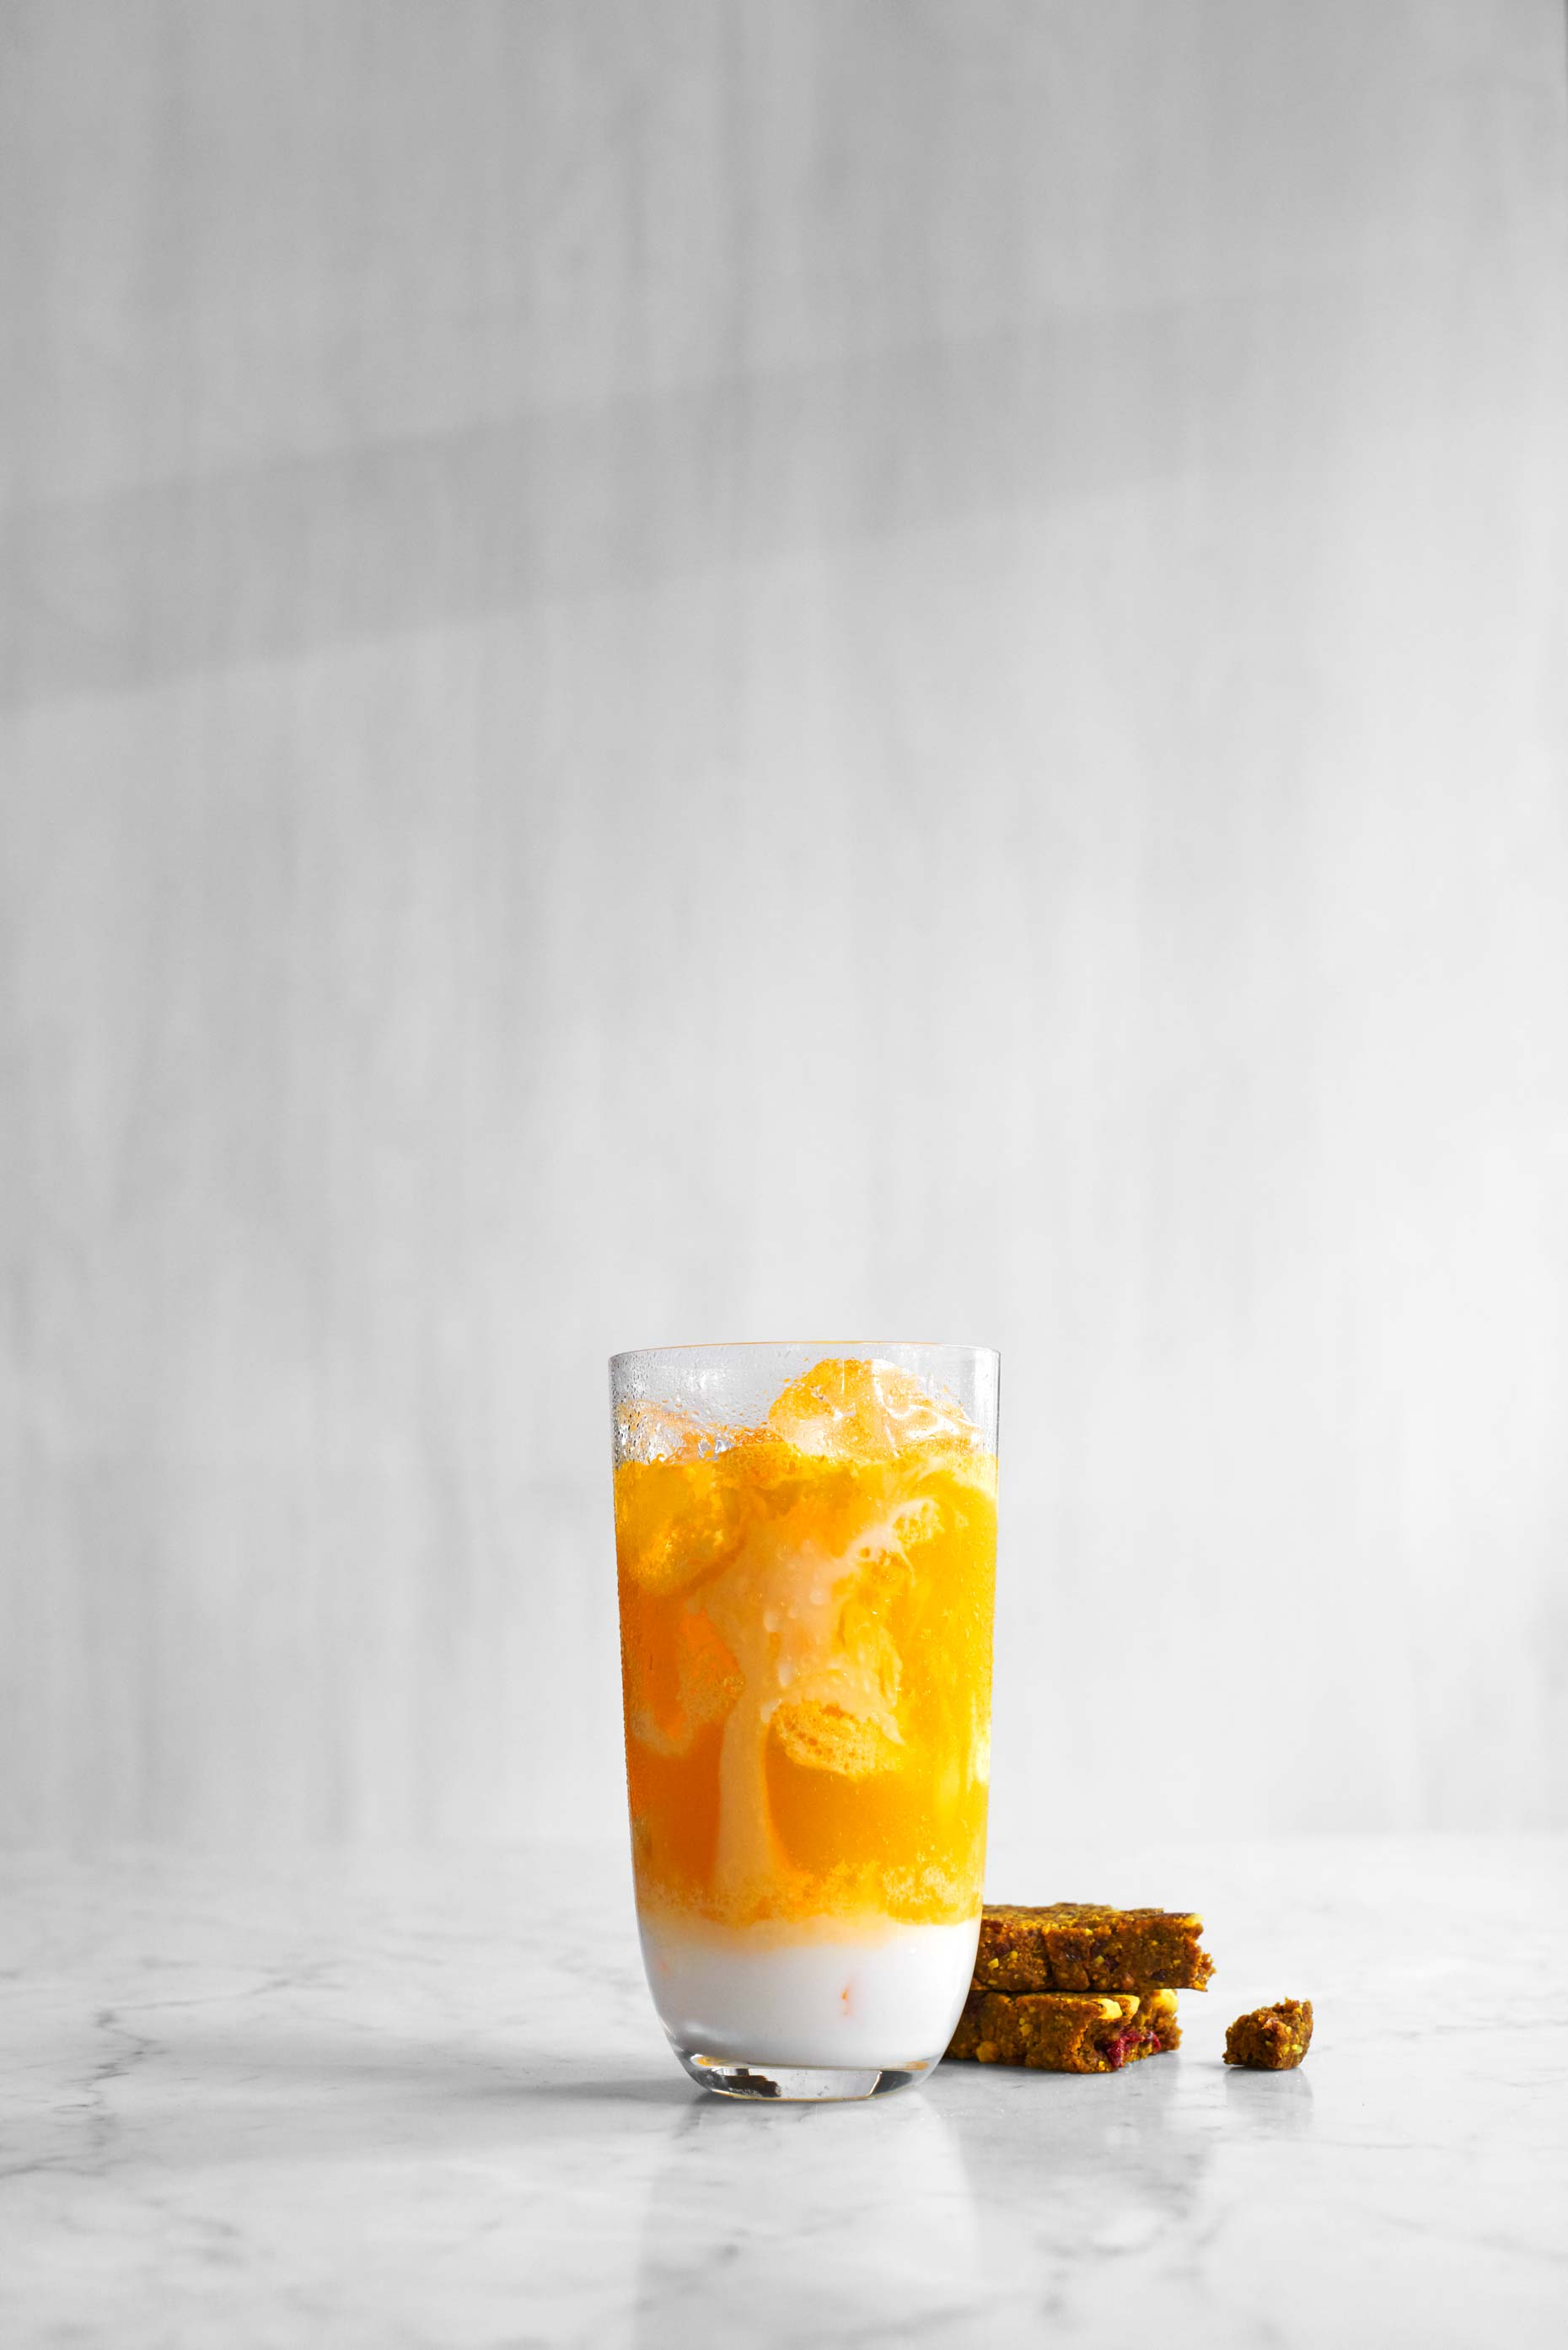 Yellow mango, banana and pineapple smoothie photographed by Food Photographer Adrian Mueller New York